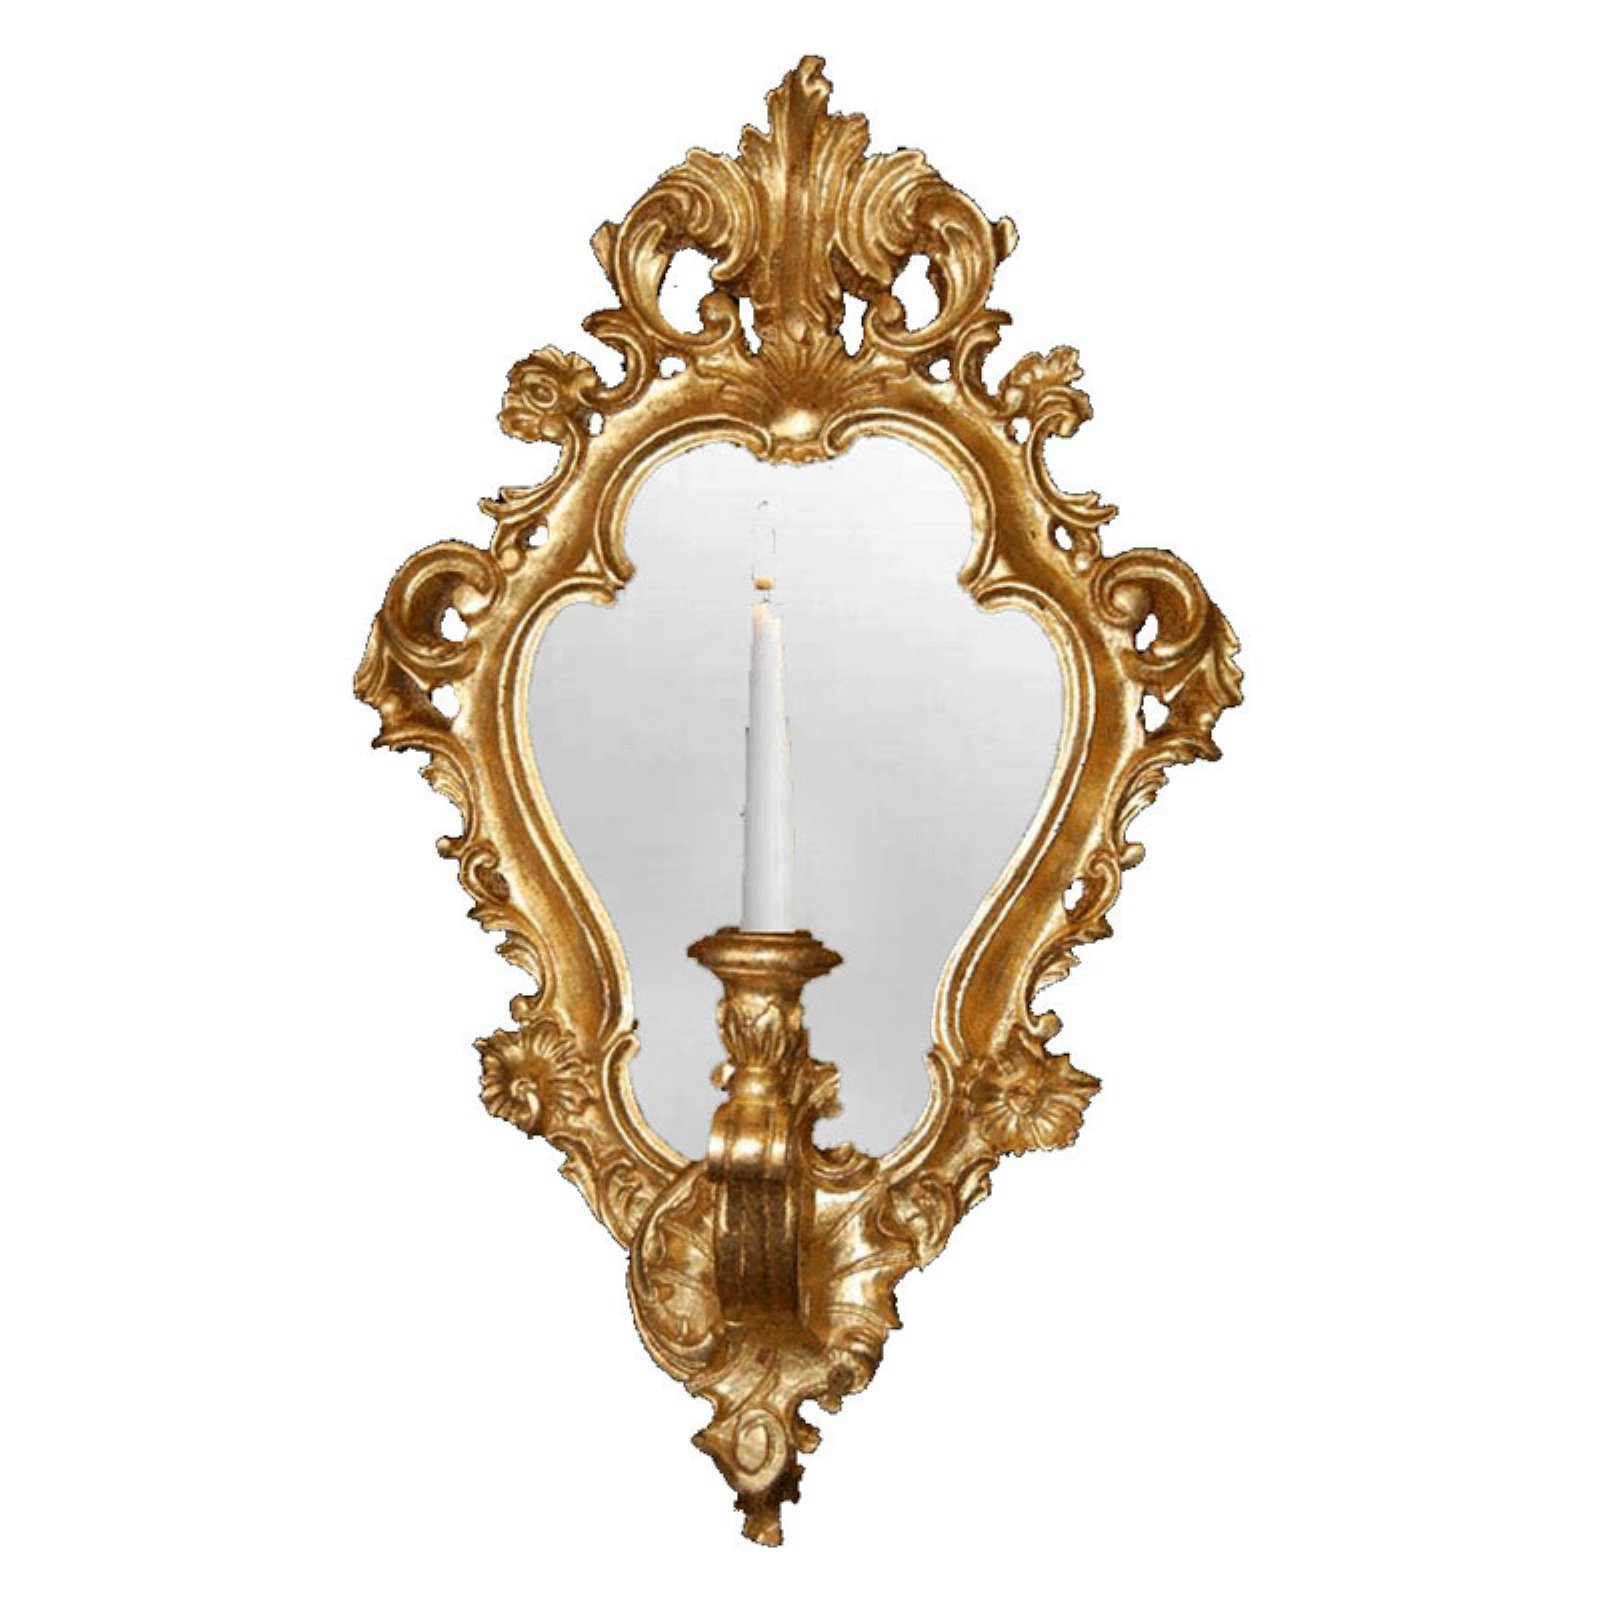 Hickory Manor House Regence Candle Sconce Mirror 13W x 22H in. by Hickory Manor Home